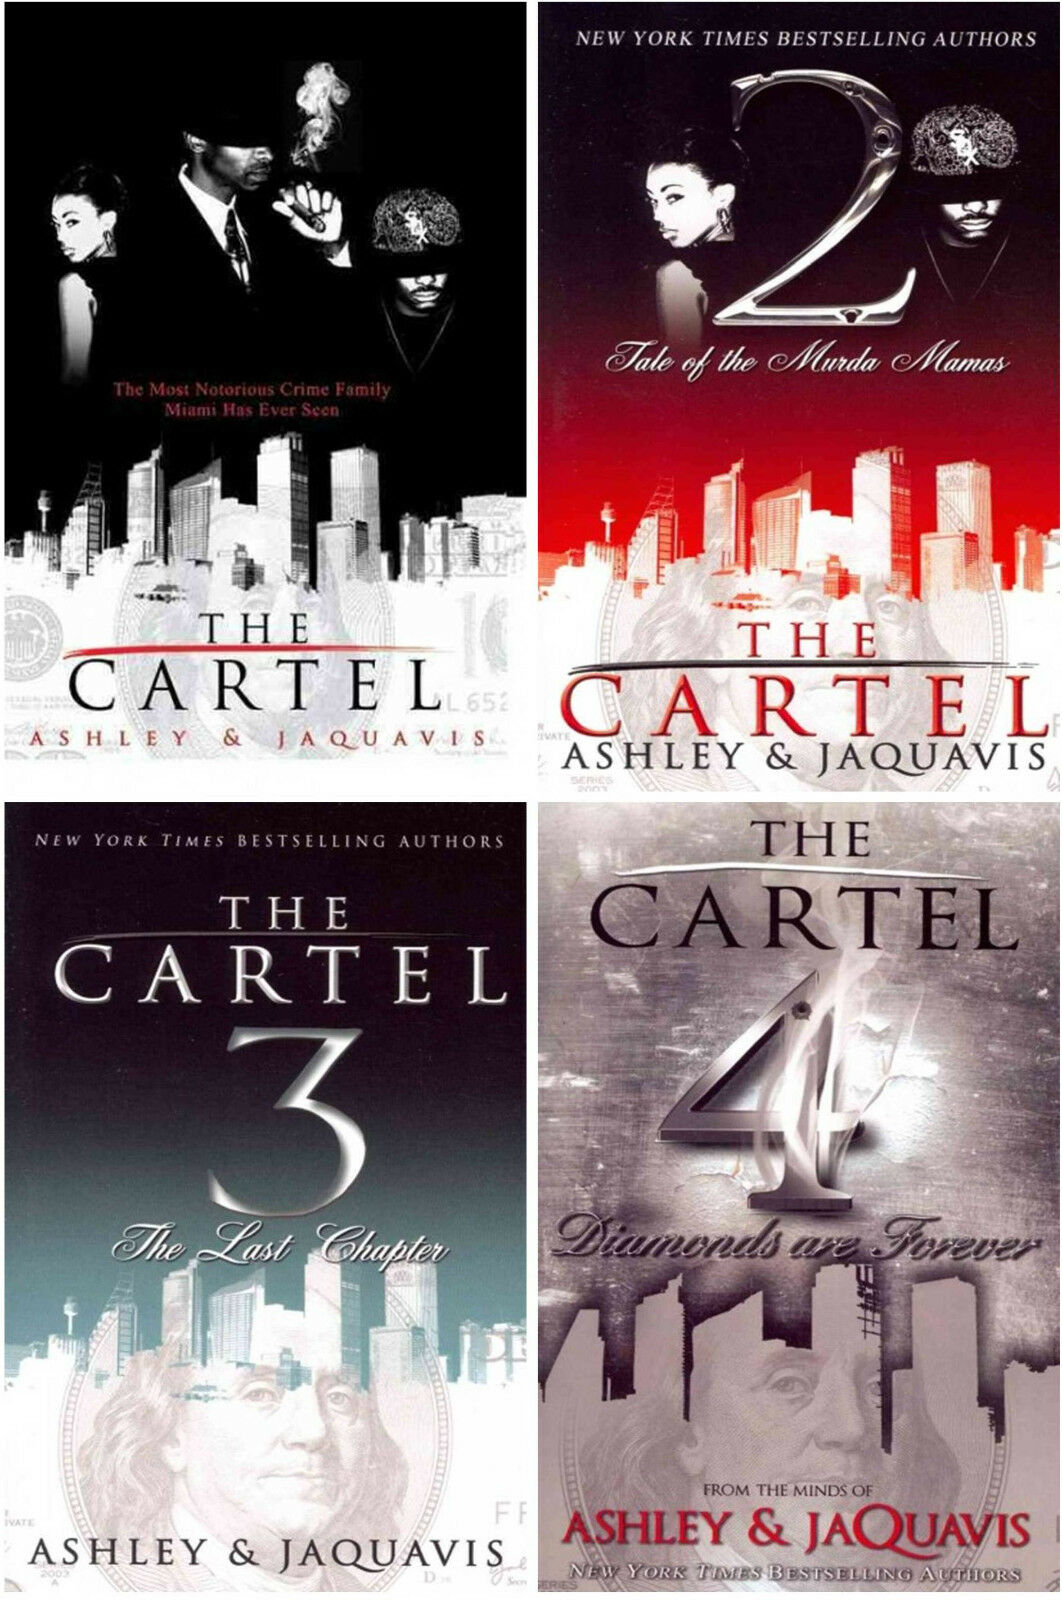 Image for The Cartel Series 1-4 MASS MARKET Paperback Collection by Ashley & Jaquavis! New by Ashley & JaQuavis ; New Ashley ; R.H. Ed. Ashley ; Jaquavis